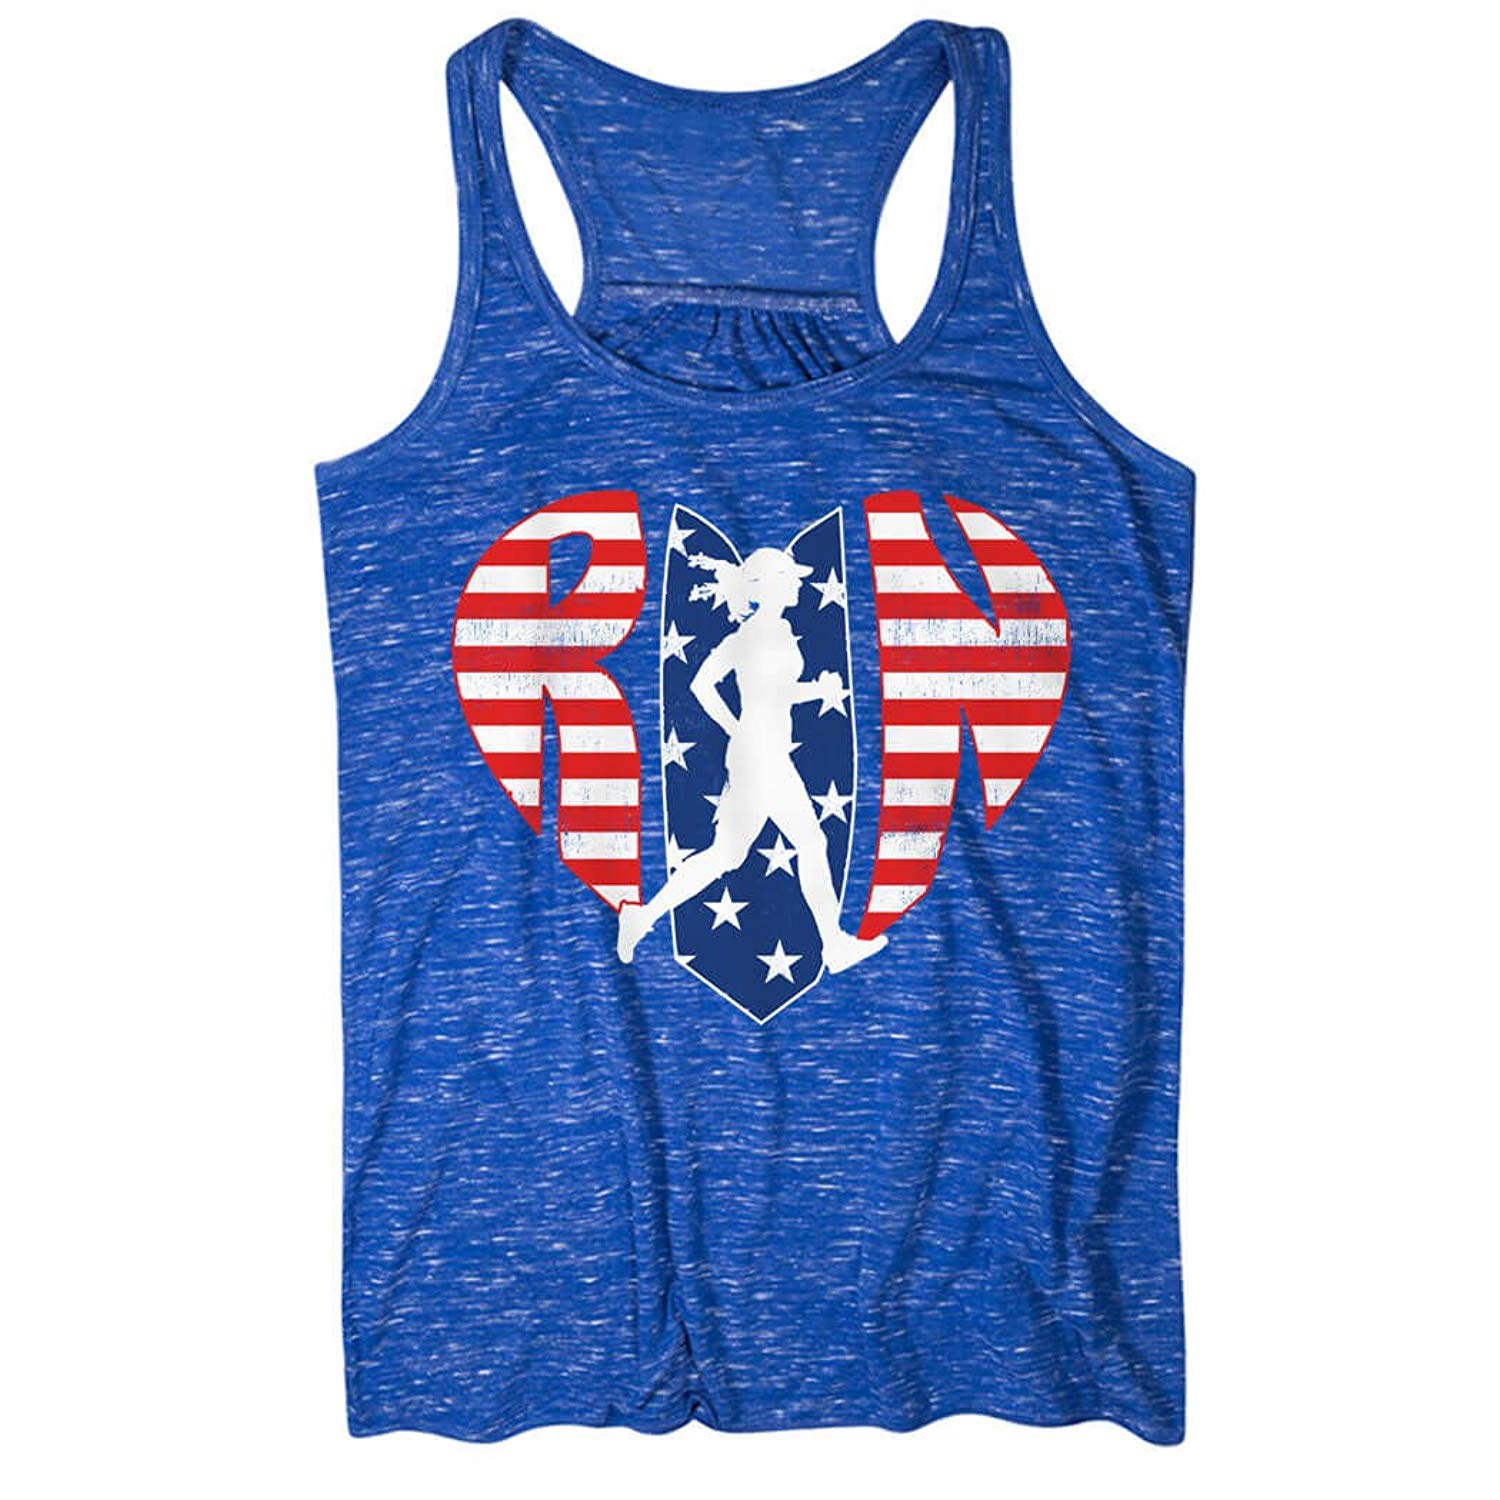 a0690a977932a0 Get Quotations · Gone For a Run Love-The-Run-Patriotic Flowy Racerback Tank  Top